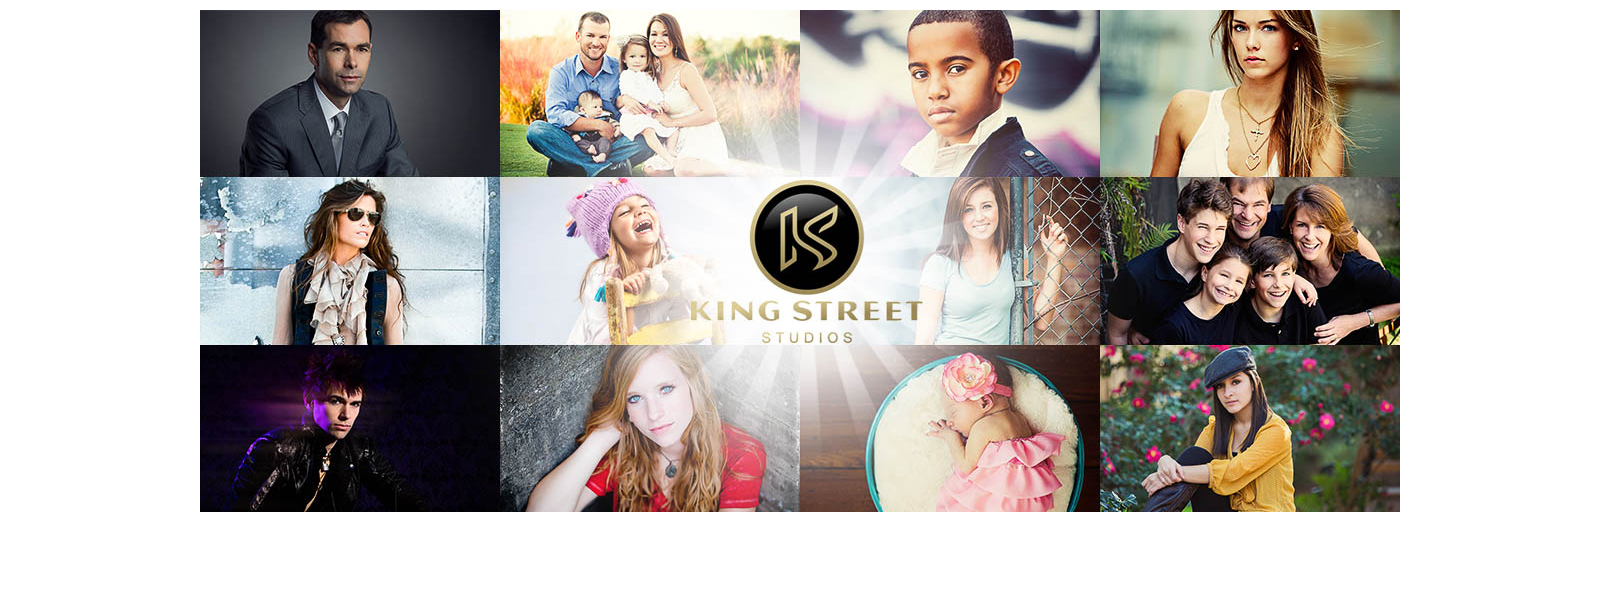 charleston photographers king street studios photography banner collage of portraits